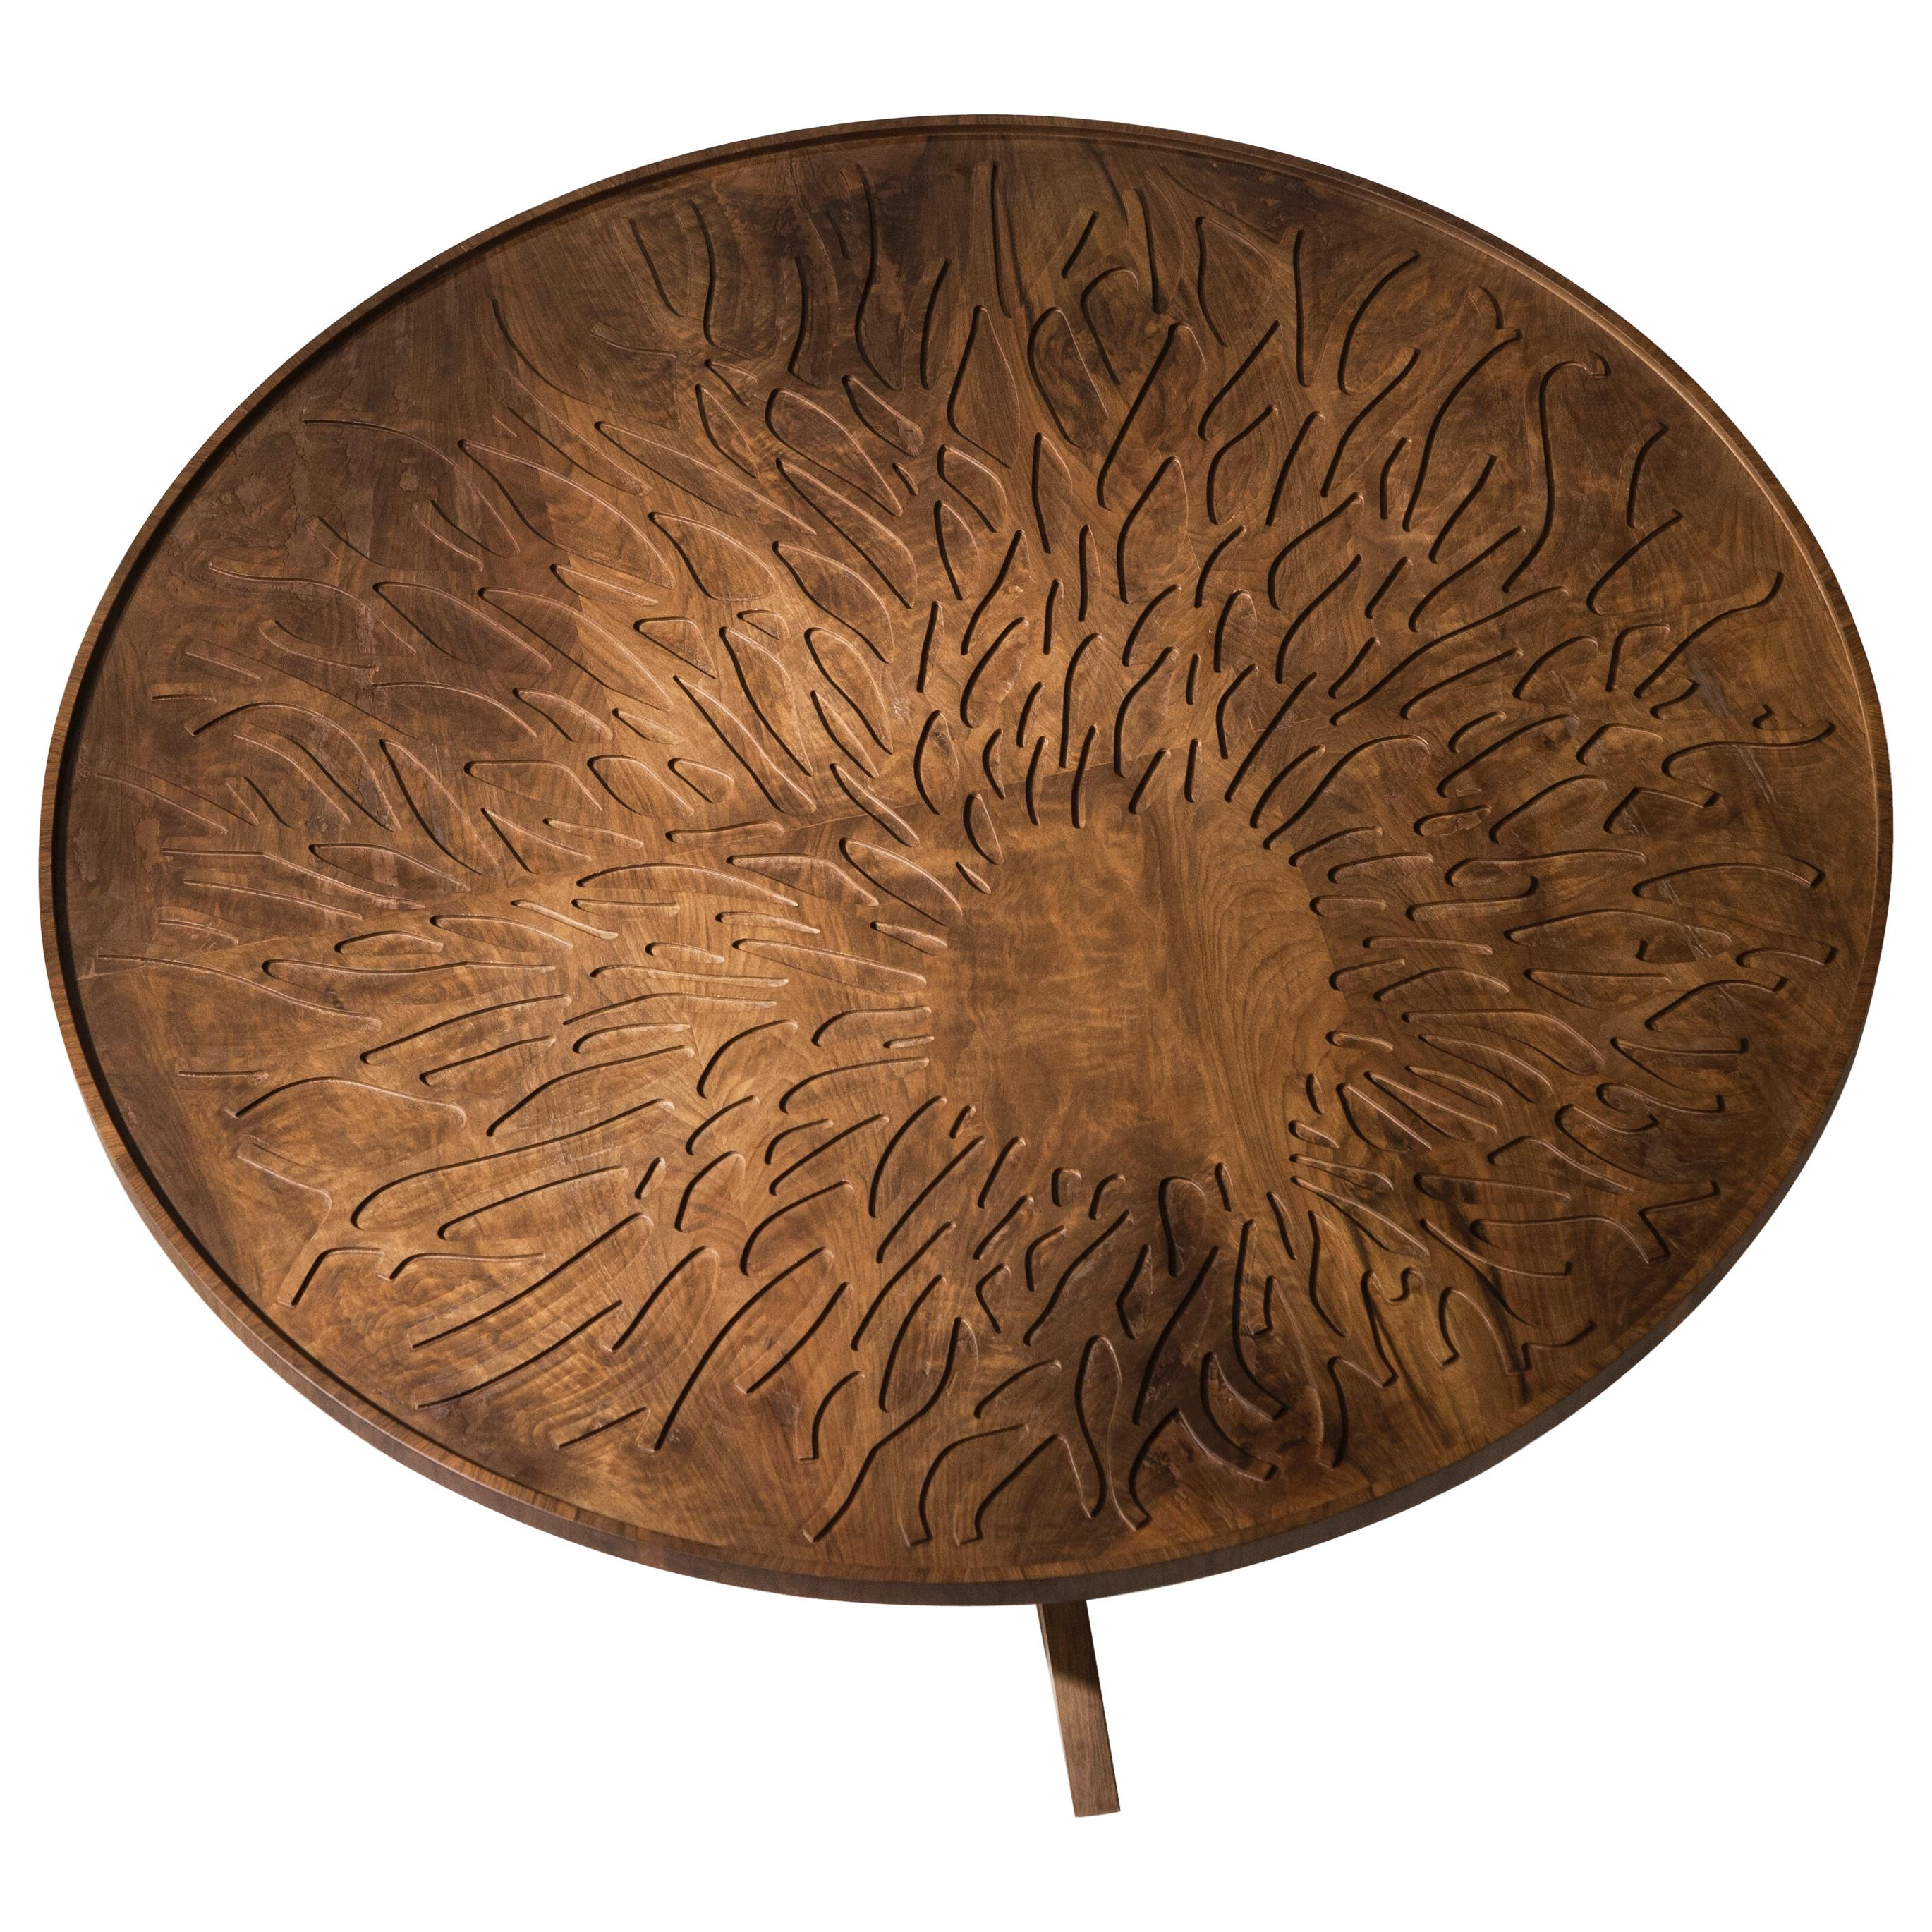 Dali Coffee Table, Solid Walnut Wood Coffee Table with Branch Carved Top Design